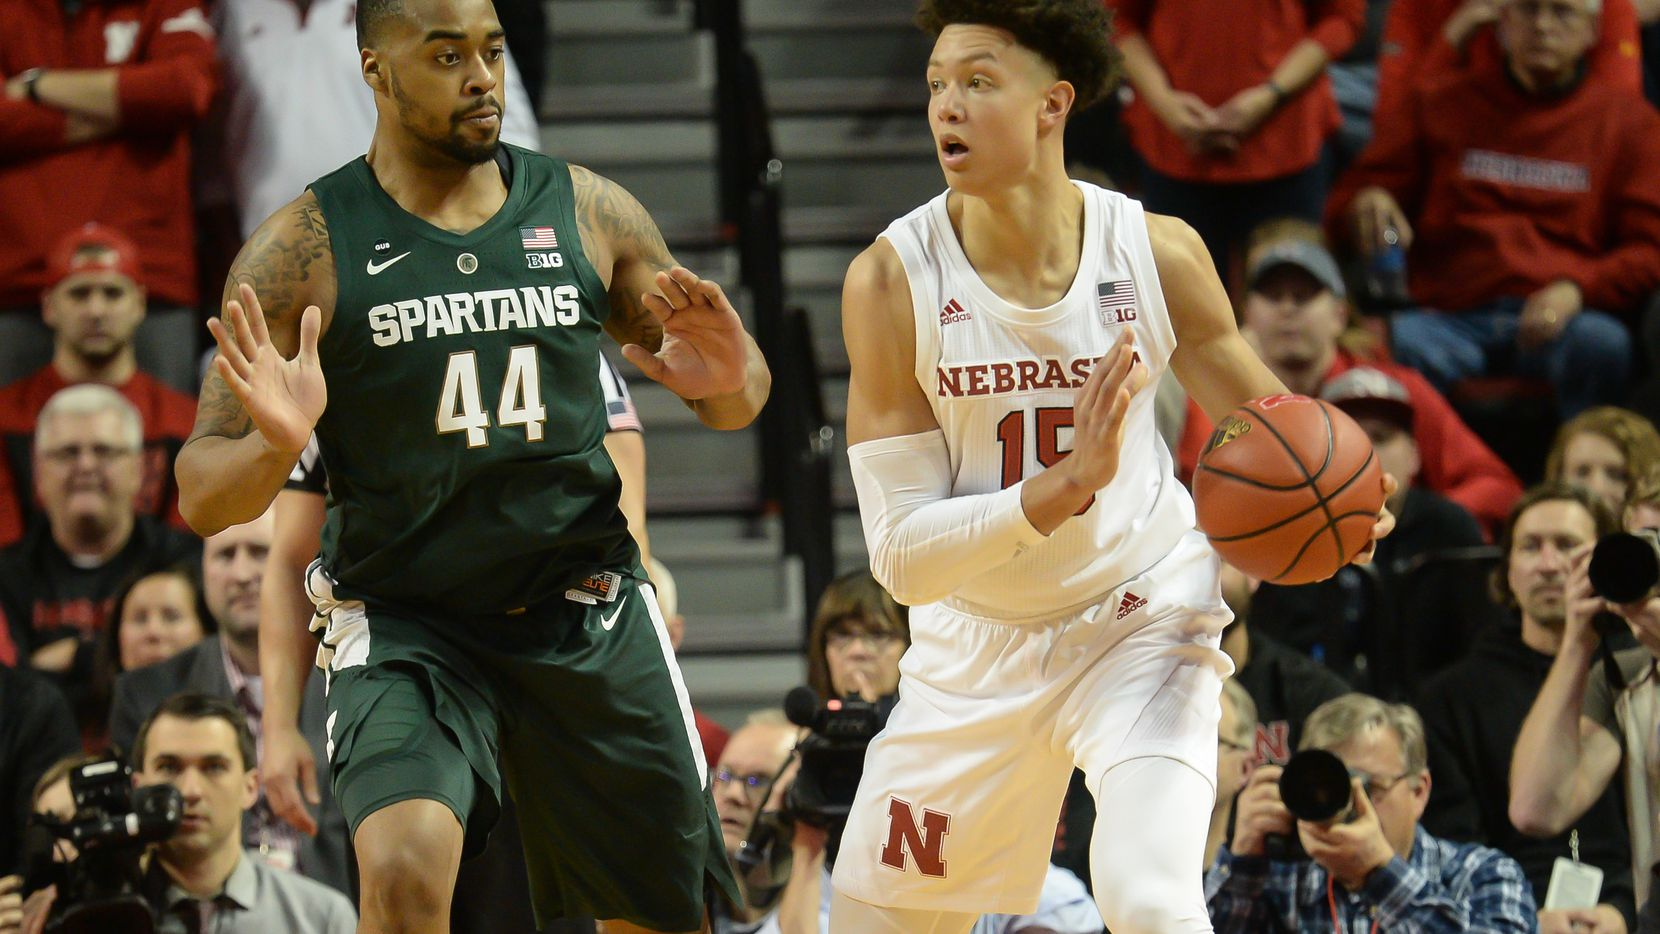 LINCOLN, NE - JANUARY 17: Isaiah Roby #15 of the Nebraska Cornhuskers looks to pass against Nick Ward #44 of the Michigan State Spartans at Pinnacle Bank Arena on January 17, 2019 in Lincoln, Nebraska. (Photo by Steven Branscombe/Getty Images)